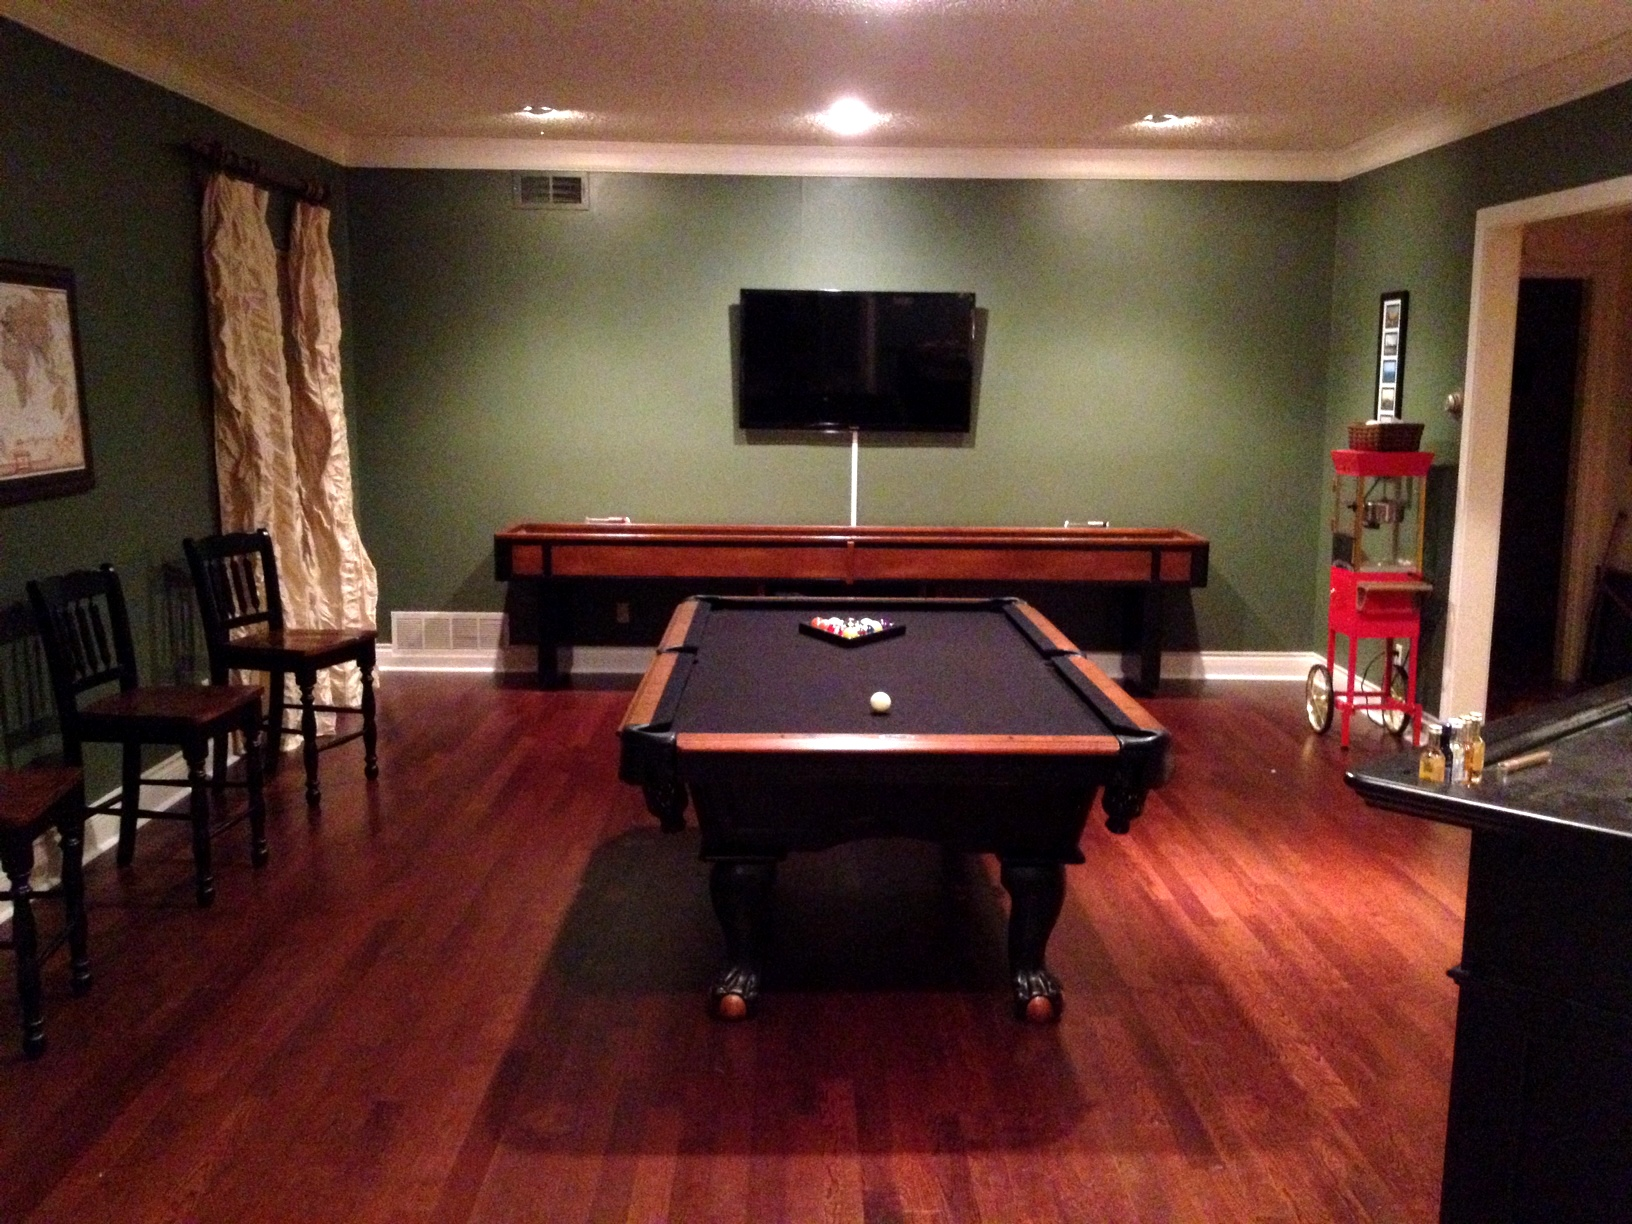 Your walls are the place to start when it comes to creating a mood for your gaming room. My Favorite Color is You: The Game Room Transformation